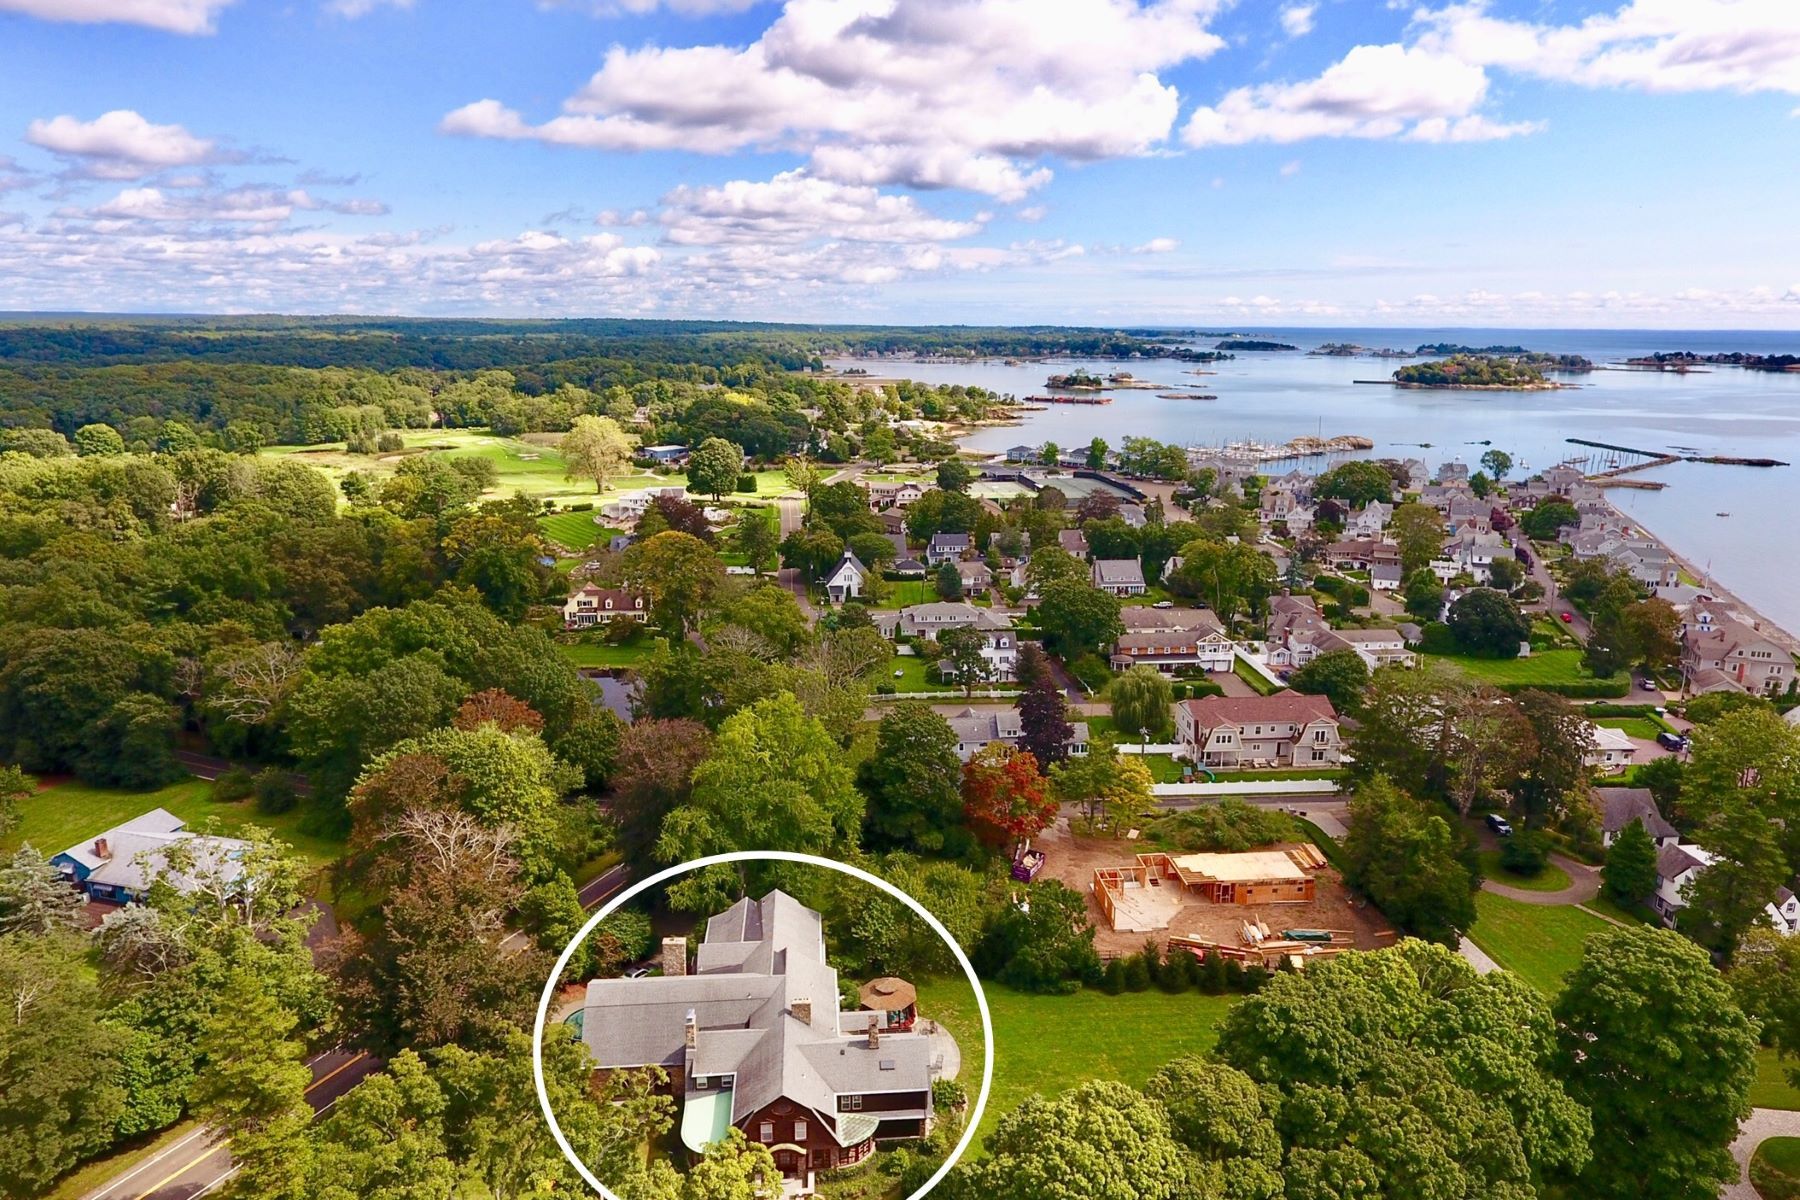 Single Family Homes for Sale at 265 Pine Orchard Road Branford, Connecticut 06405 United States